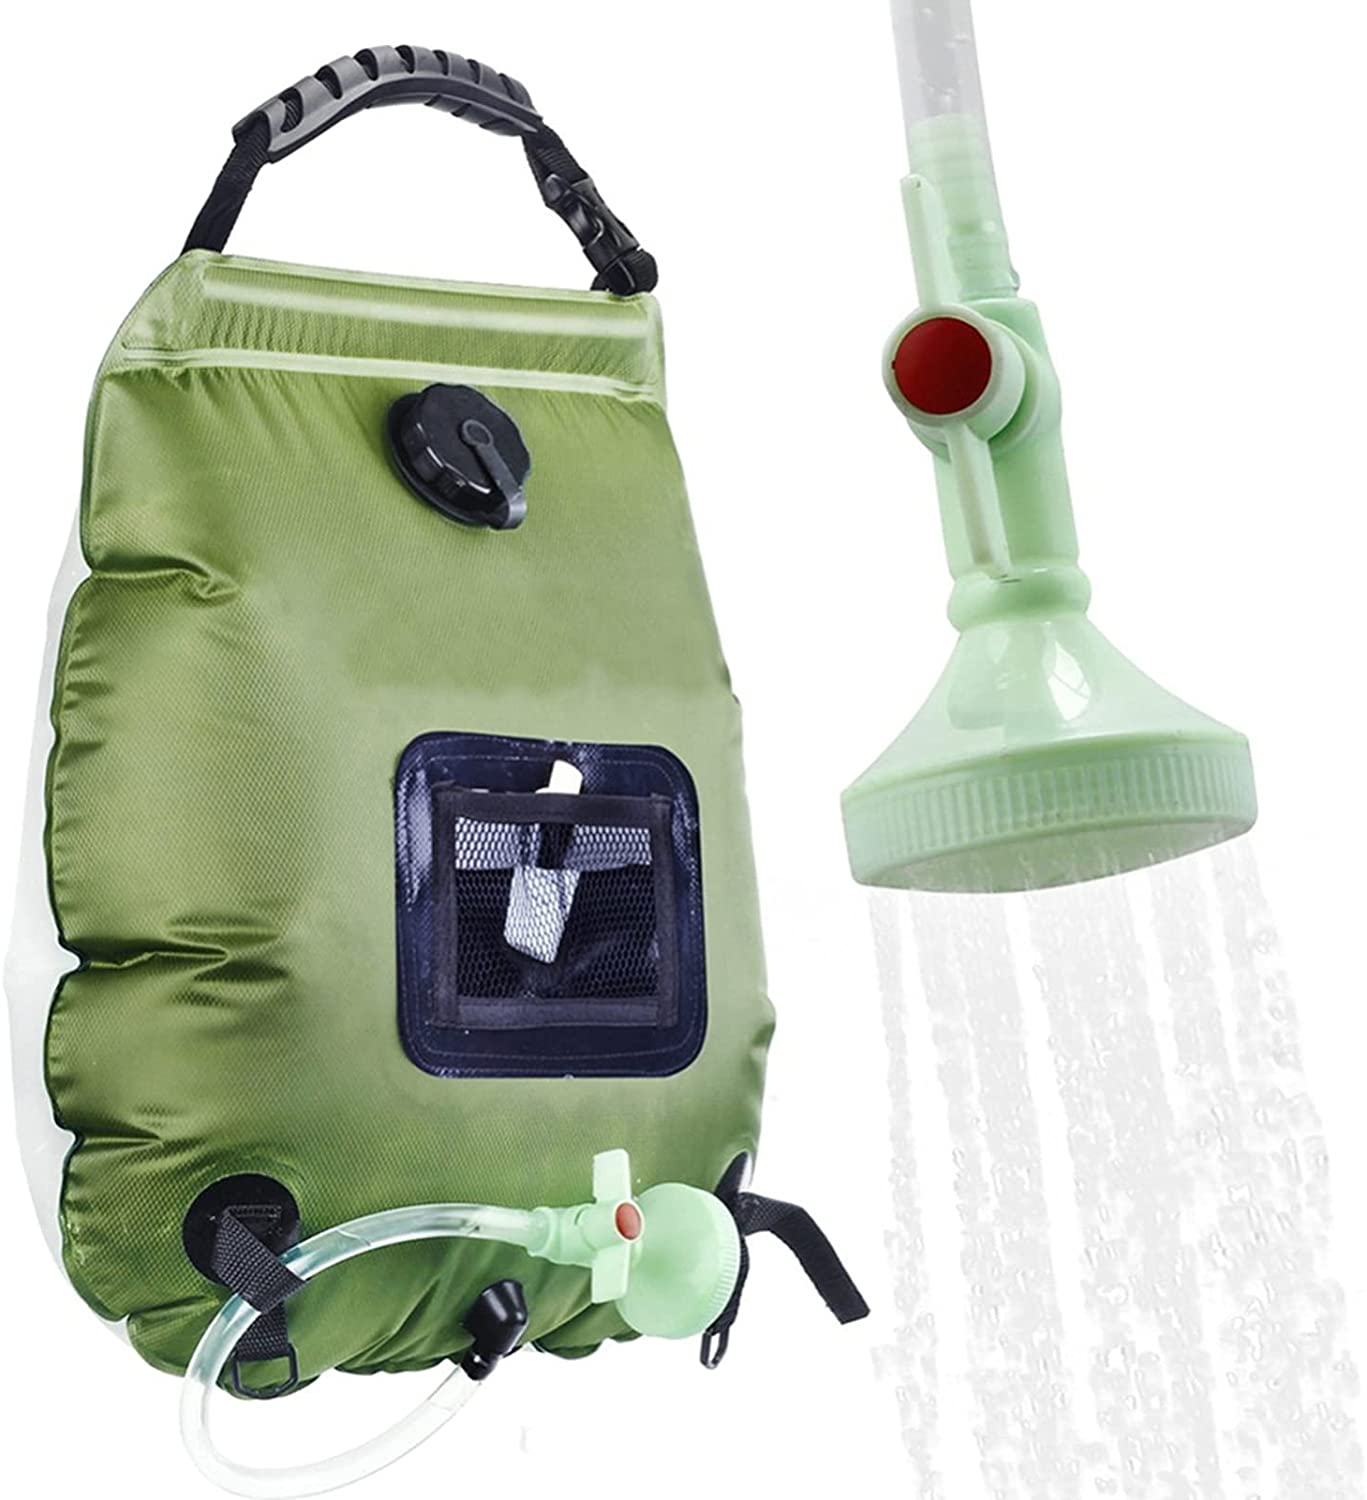 Solar Oakland Mall Shower Online limited product Bag Hua Outdoor 20L Camping Porta